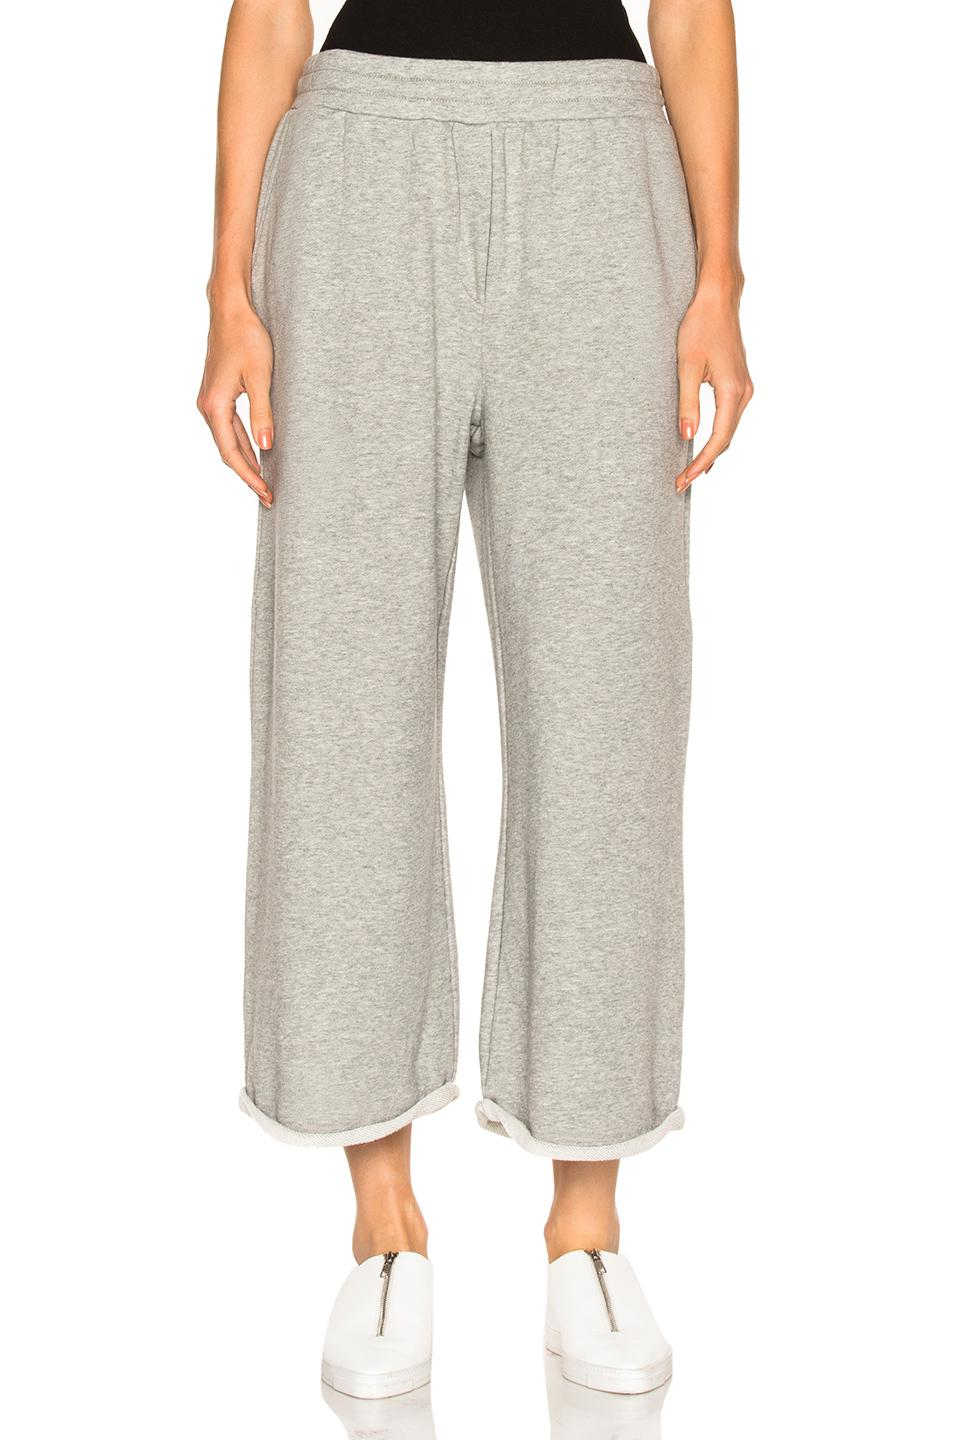 T By Alexander Wang French Terry Cropped Wide Leg Sweatpants in Gray ... 7ec5f23b1c1f0